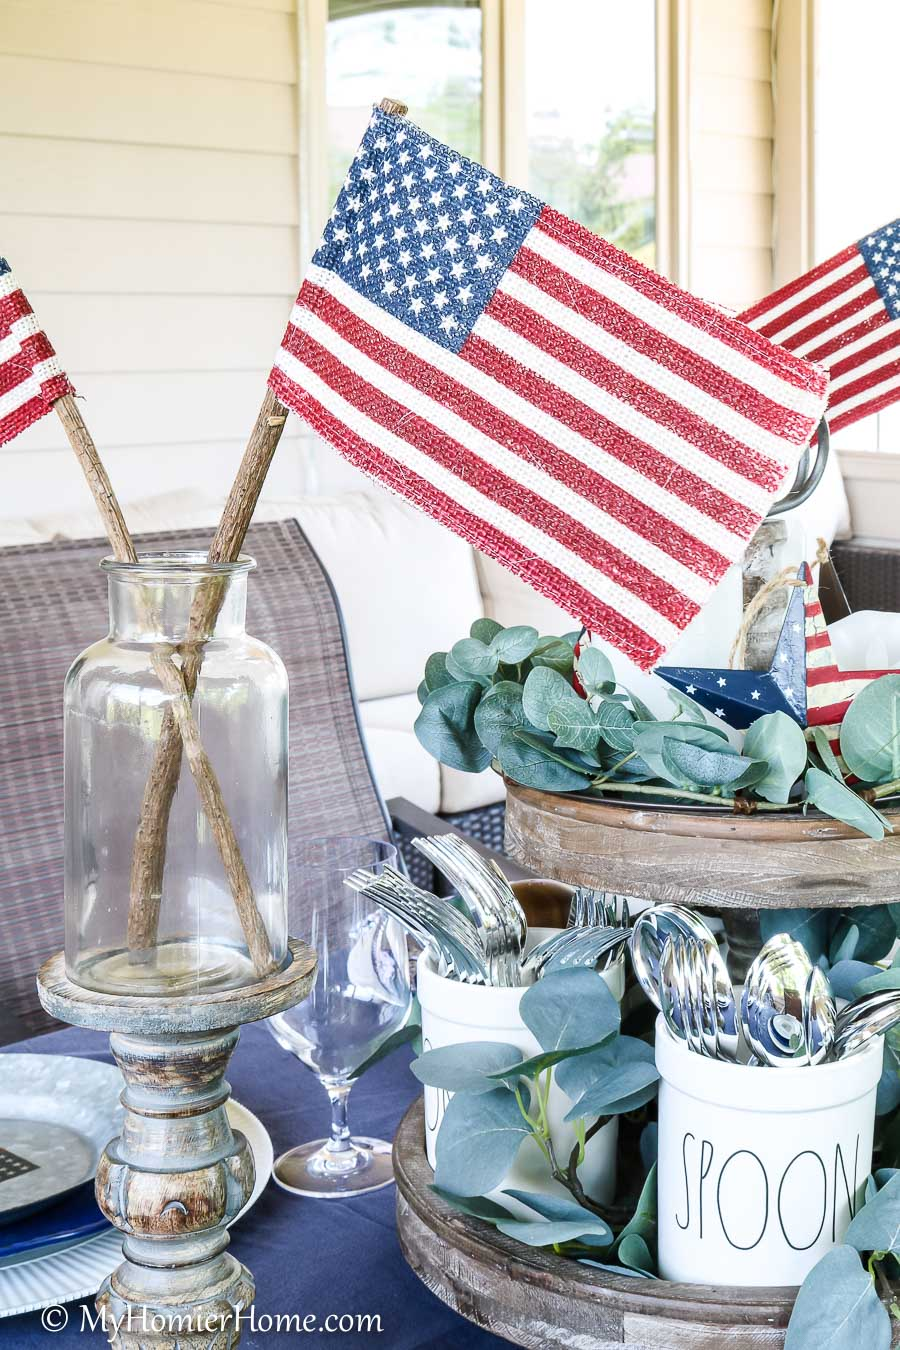 We love celebrating America, so if you are hosting a party or want some red, white, and blue vibes, check out my patriotic outdoor table decor!